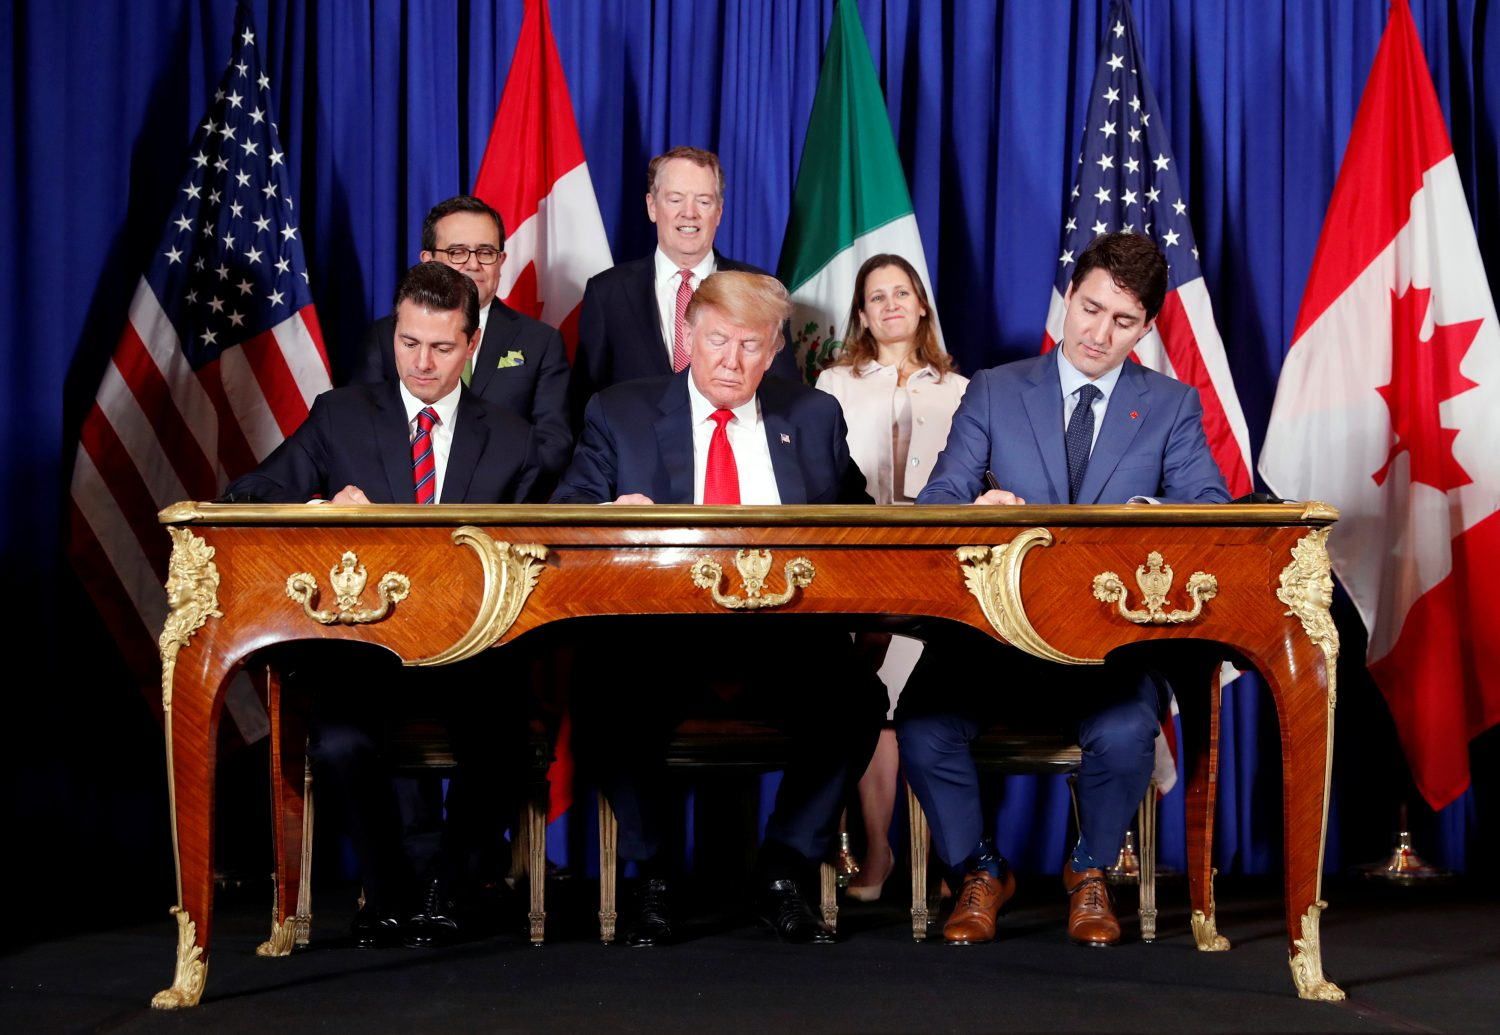 FILE PHOTO: U.S. President Donald Trump, Canada's Prime Minister Justin Trudeau and Mexico's President Enrique Pena Nieto sign documents during the USMCA signing ceremony before the G20 leaders summit in Buenos Aires, Argentina November 30, 2018. REUTERS/Kevin Lamarque/File Photo